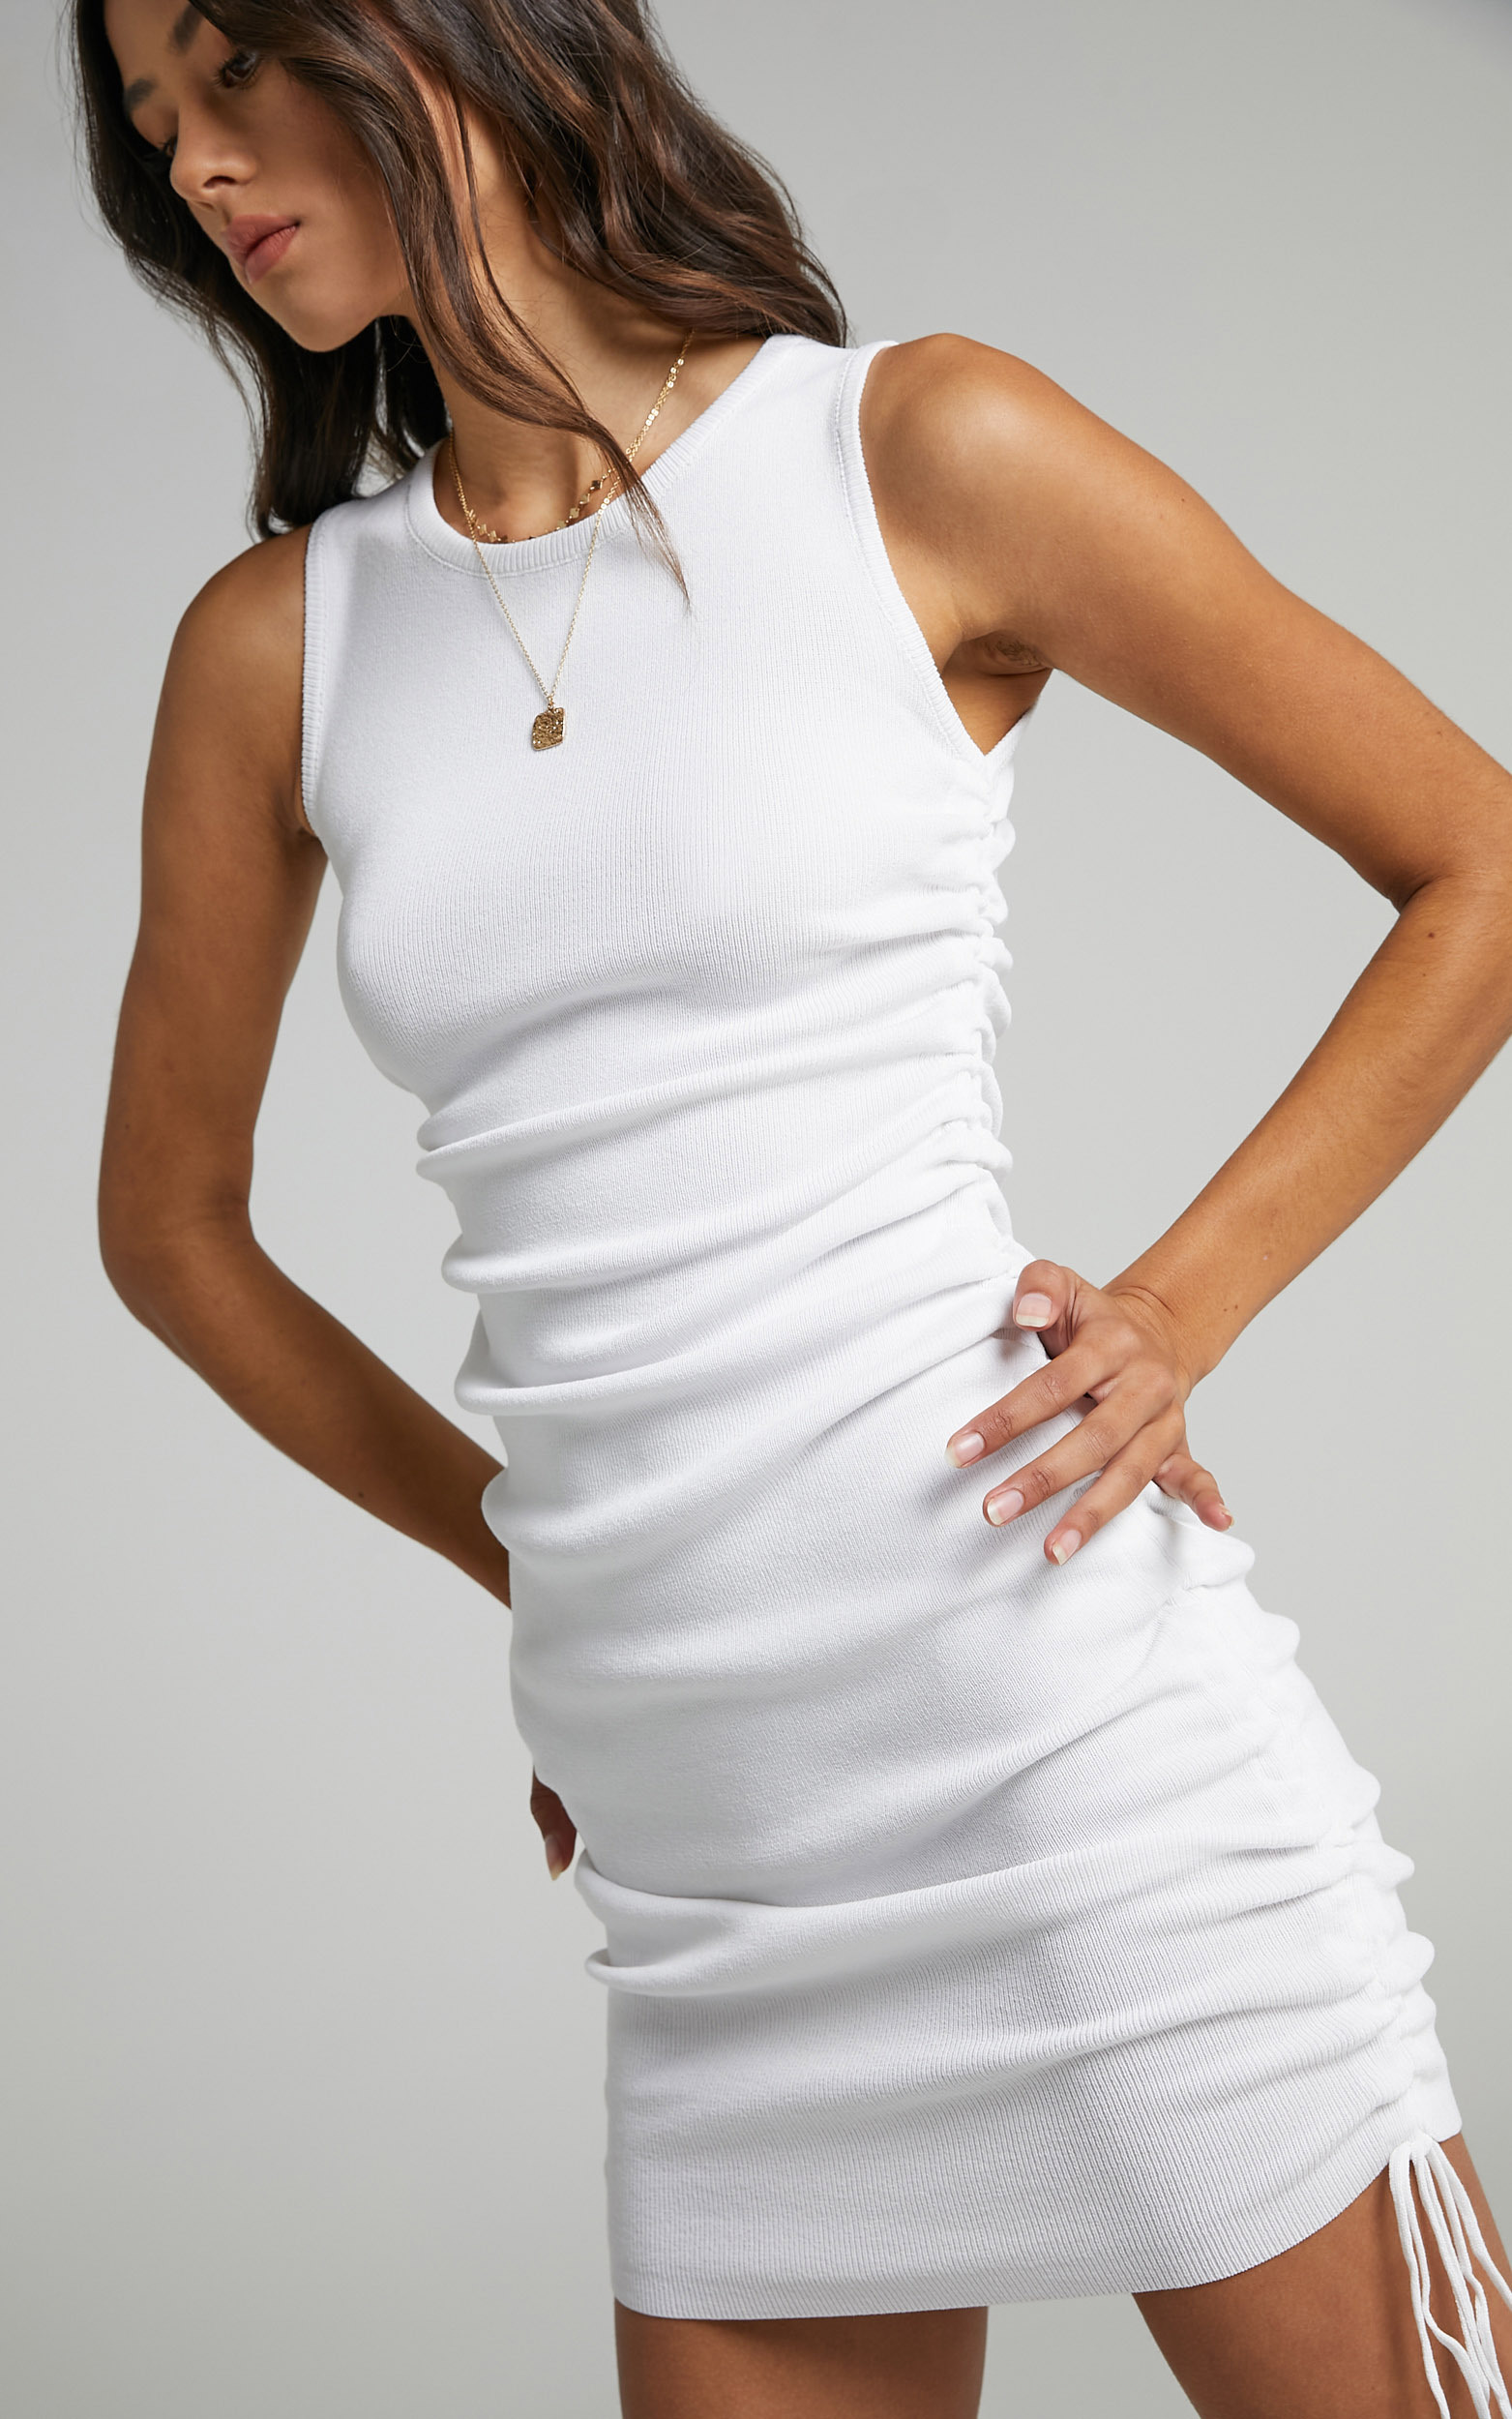 Lioness - Military Minds Dress in White - 12, WHT11, hi-res image number null